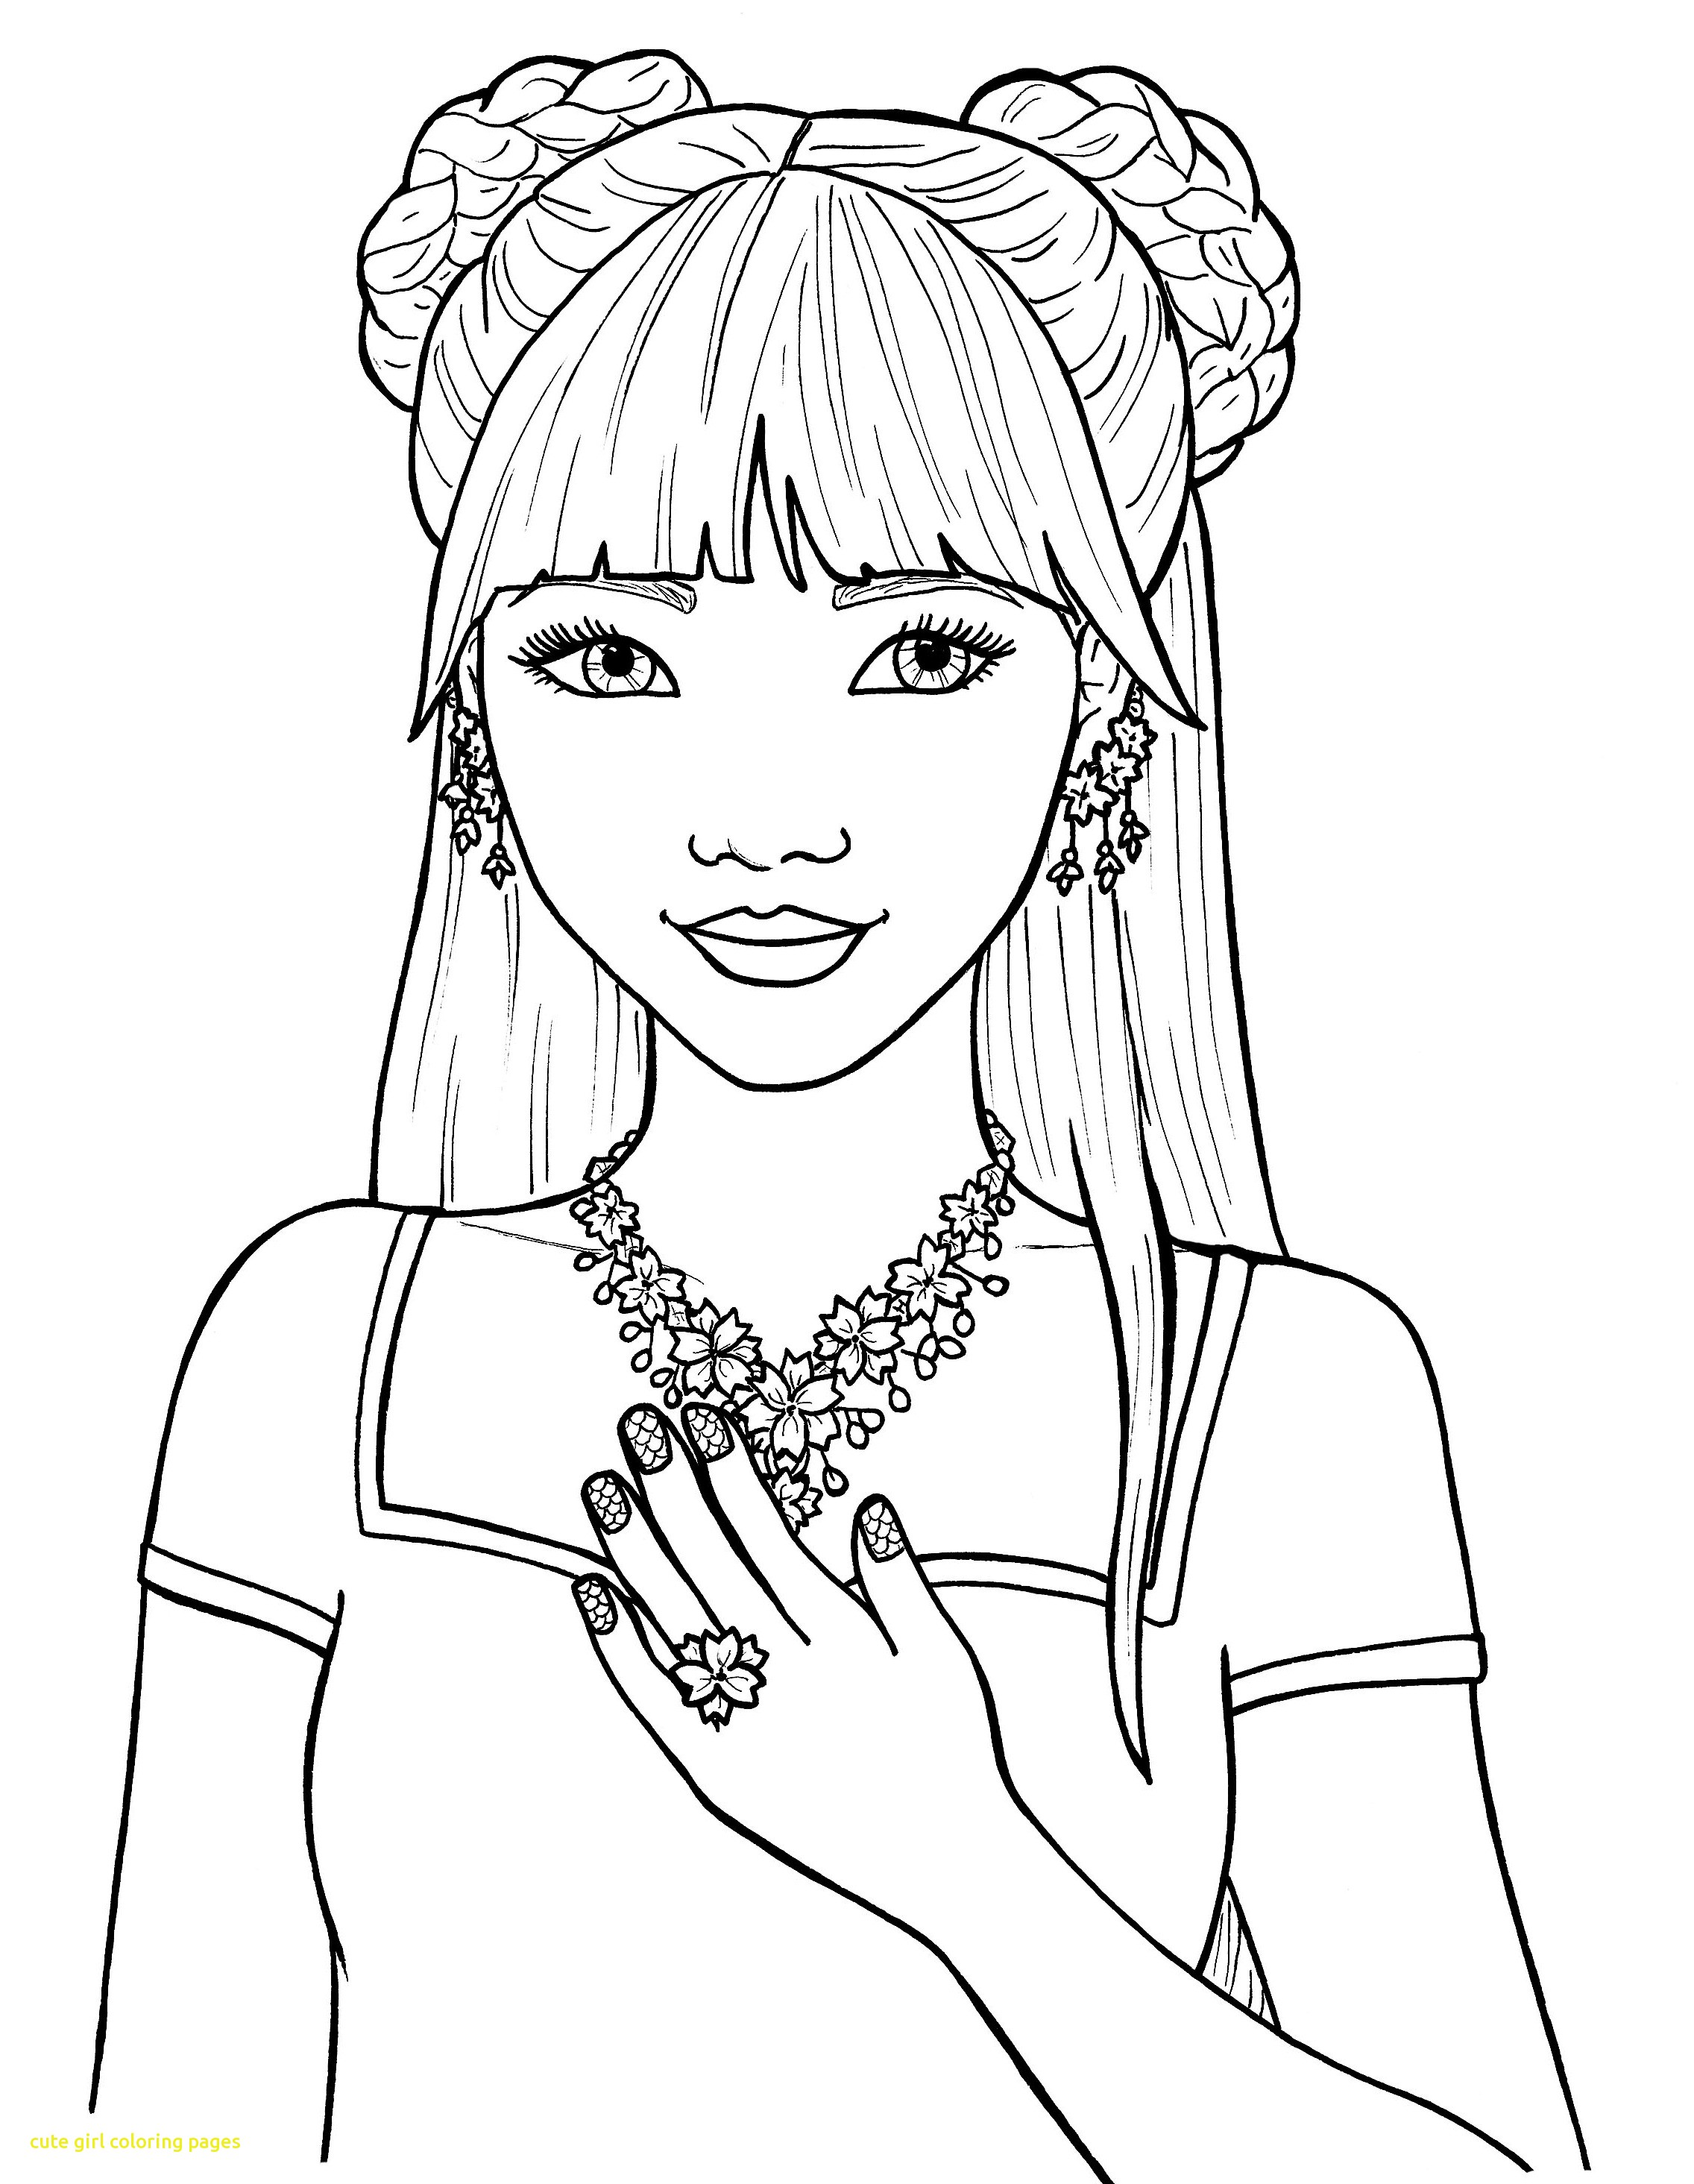 coloring page people coloring pages for girls best coloring pages for kids page people coloring